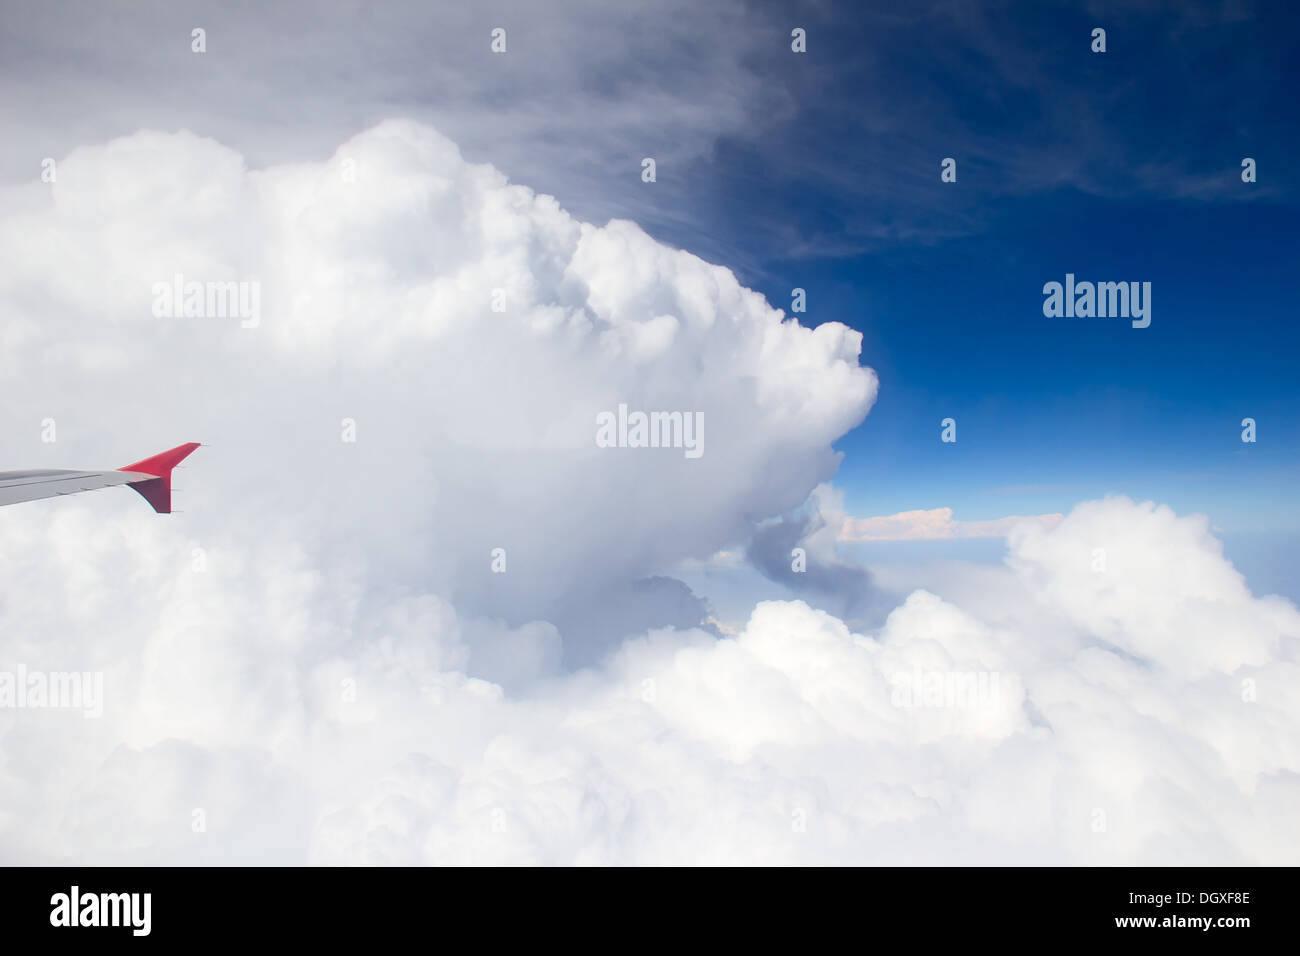 Wing of airplane flying above the clouds in the sky - Stock Image